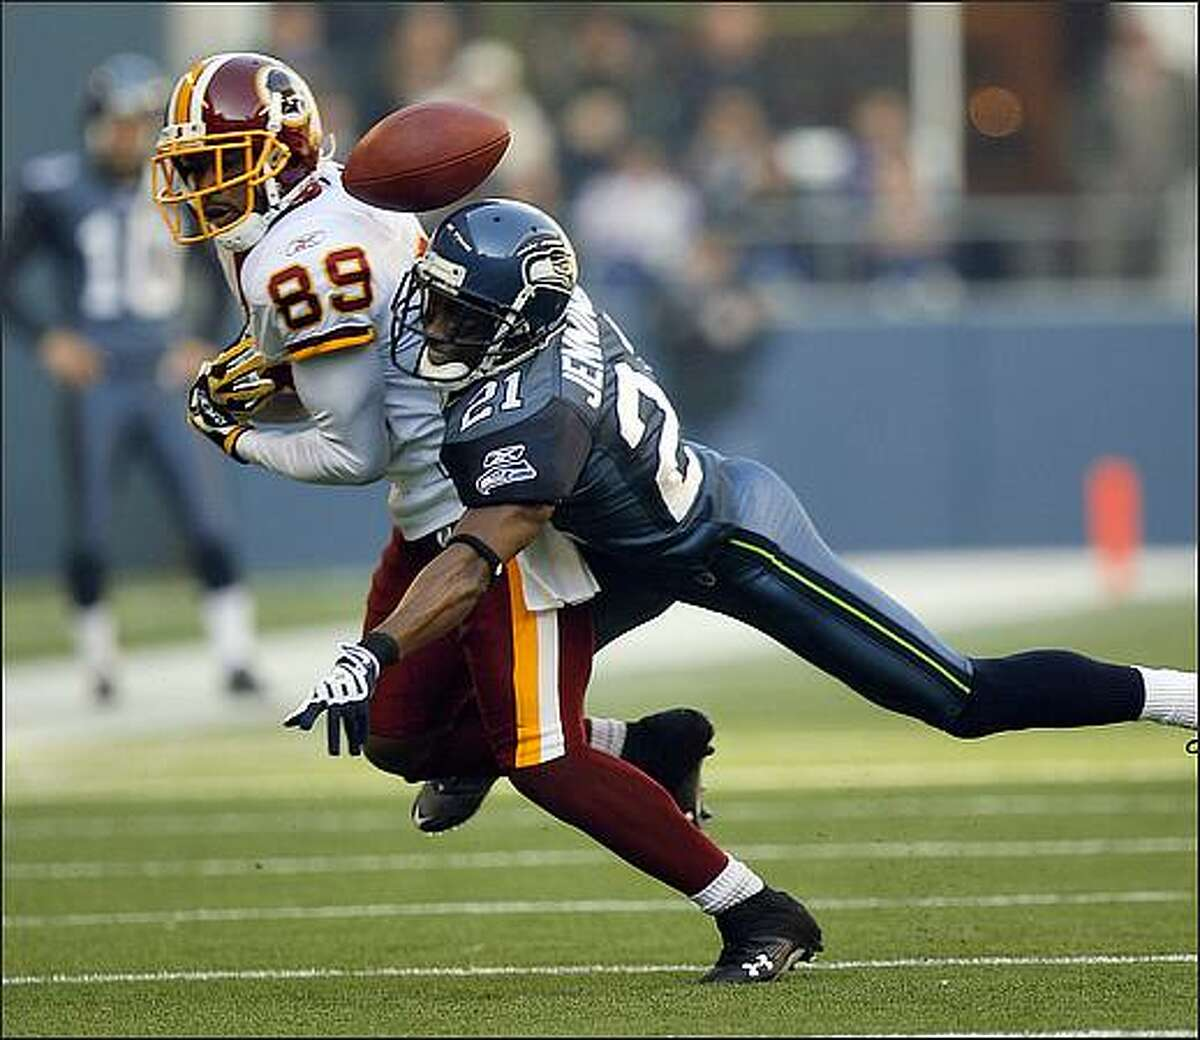 Seattle Seahawks cornerback Kelly Jennings breaks up a pass play for Washington Redskins wide receiver Santana Moss during the first quarter.